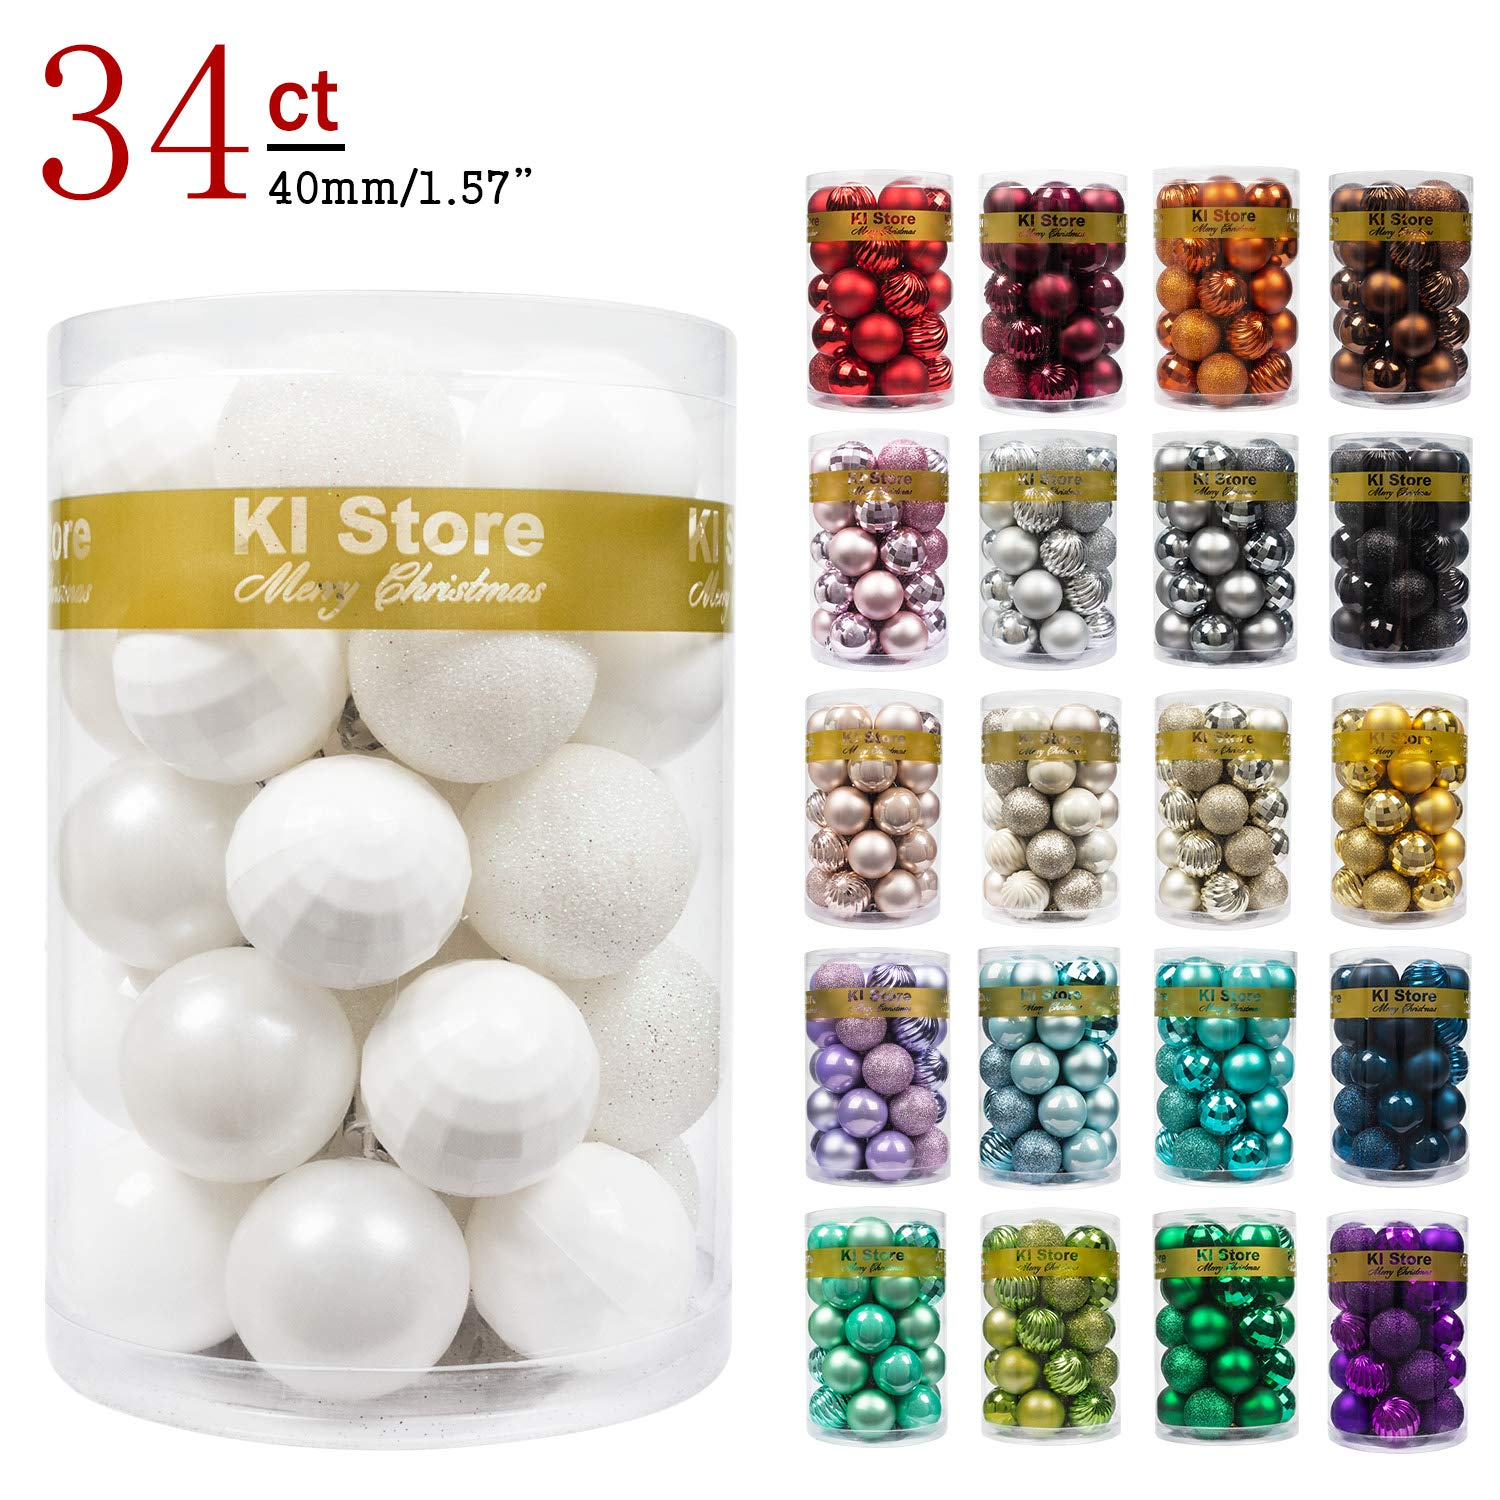 """KI Store 34ct Christmas Ball Ornaments Shatterproof Christmas Decorations Tree Balls Small for Holiday Wedding Party Decoration, Tree Ornaments Hooks Included 1.57"""" (40mm White)"""